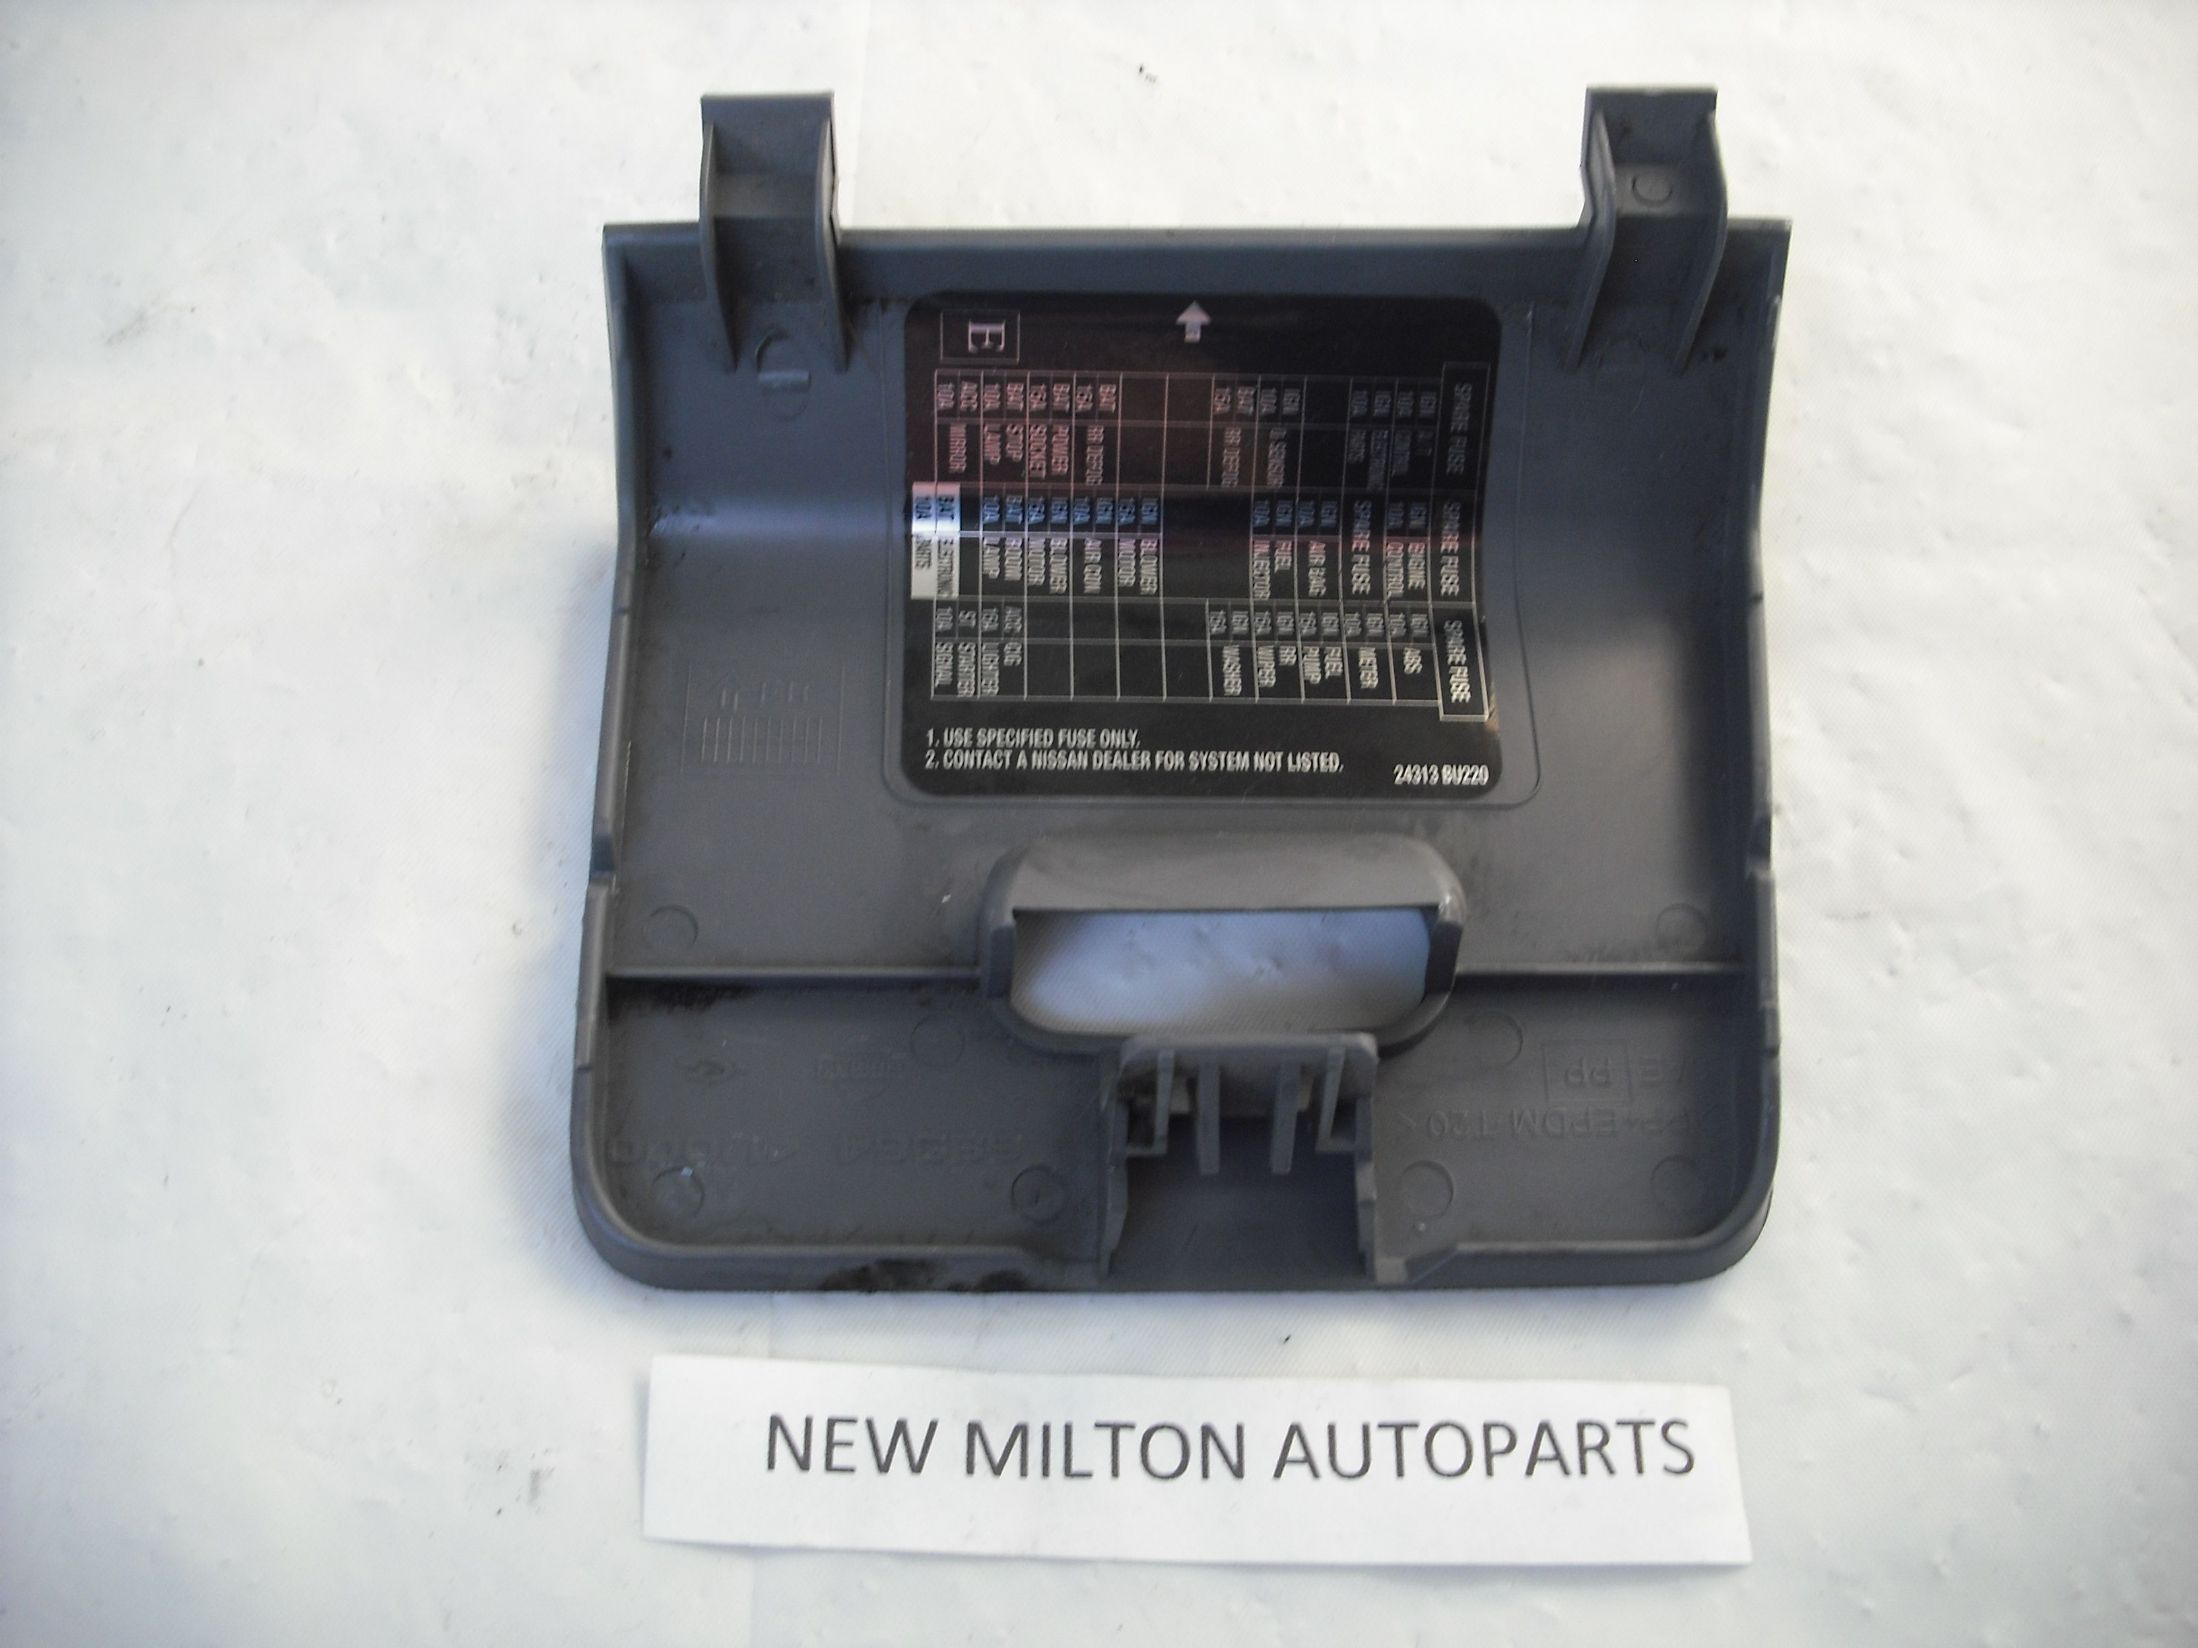 68964 4u000 A Genuine Nissan Almera Tino Interior Fuse Box Cover Rhd Boxes Cars Only